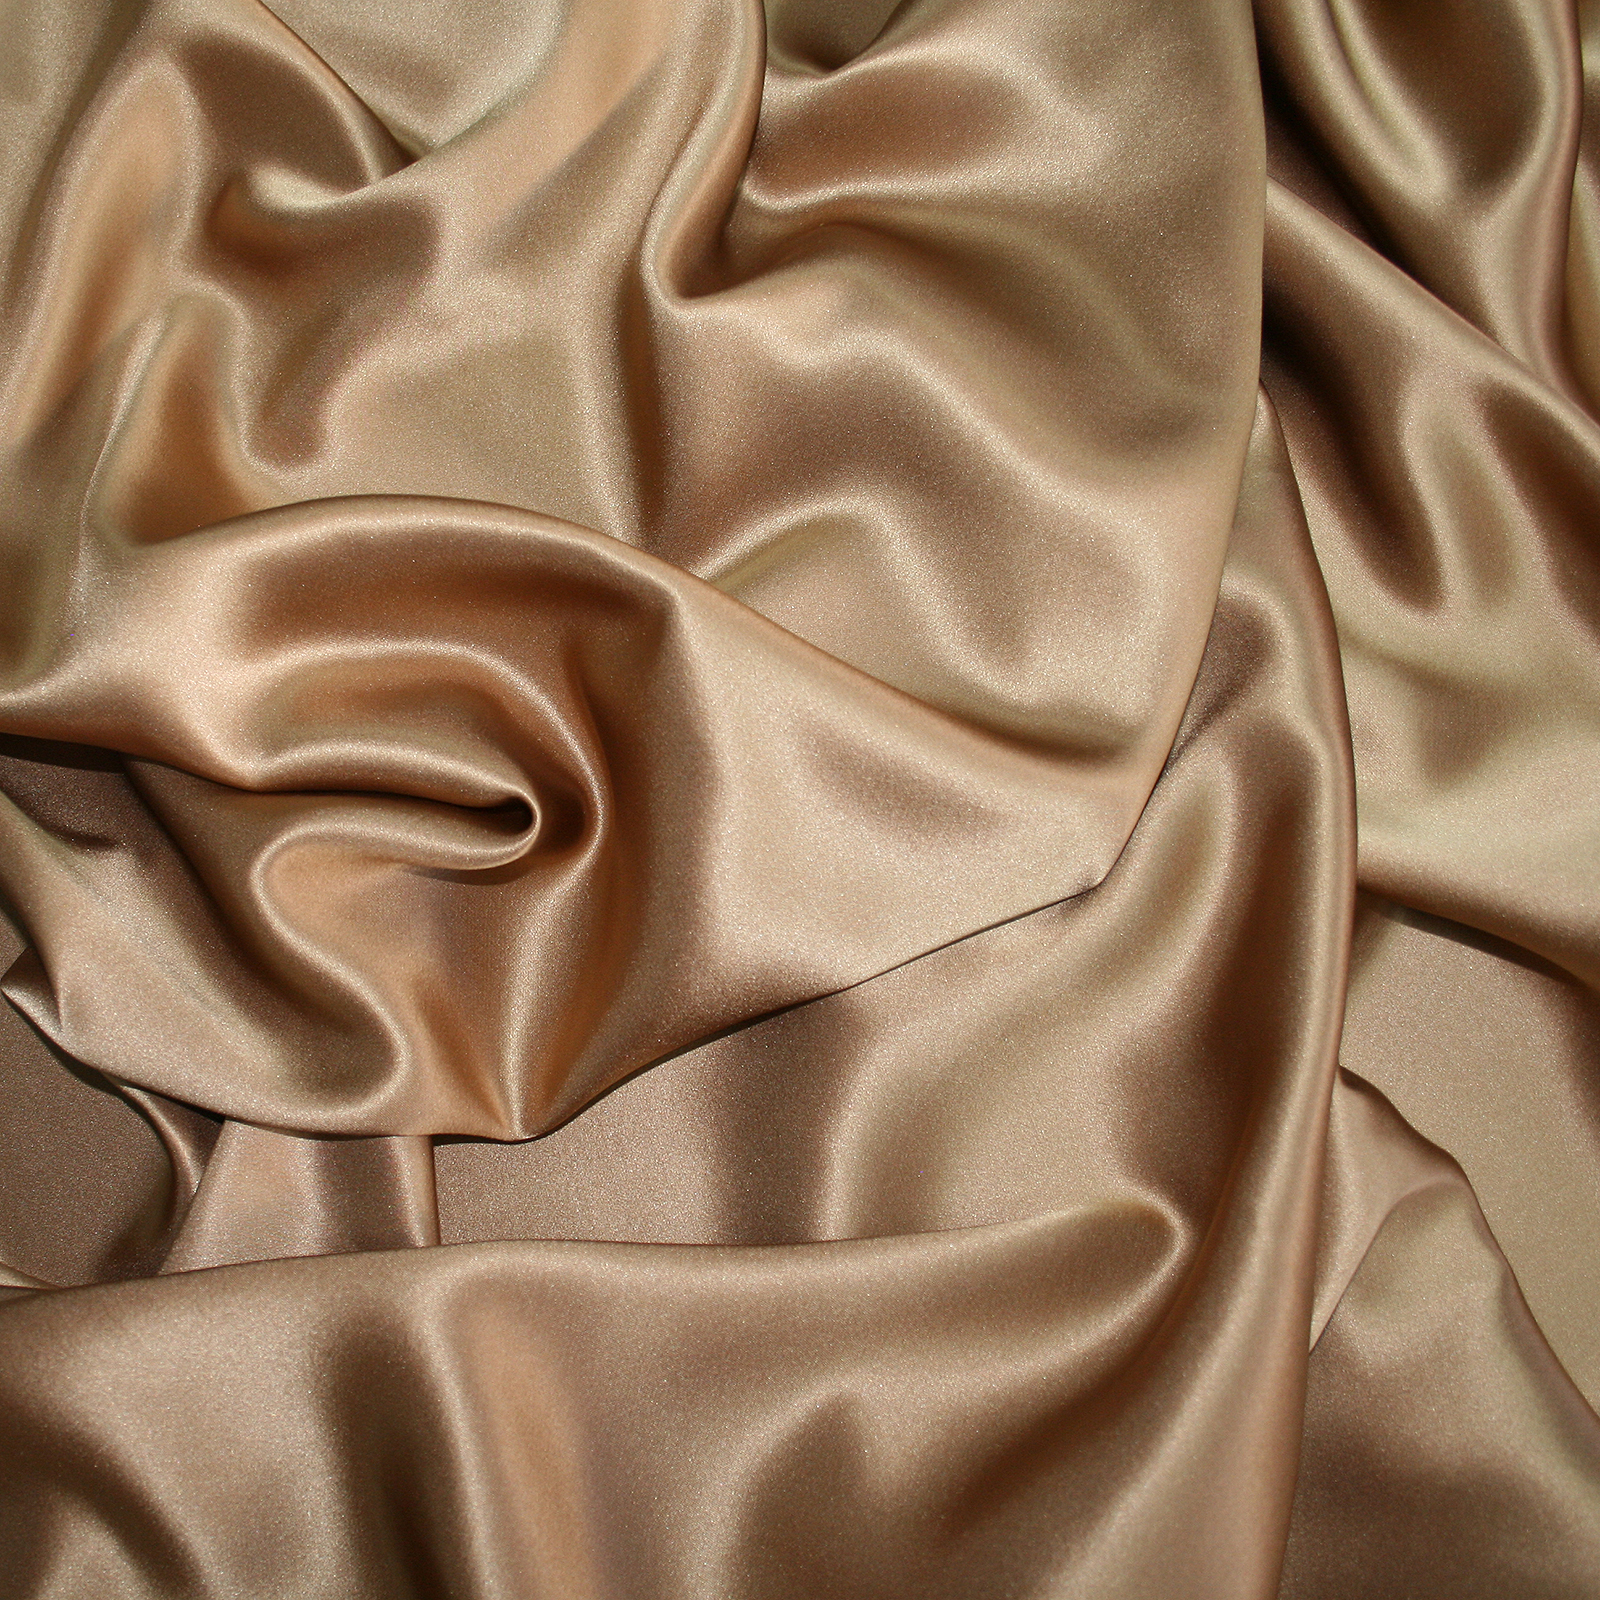 Golden beige russet silk satin fabric high quality for Satin fabric